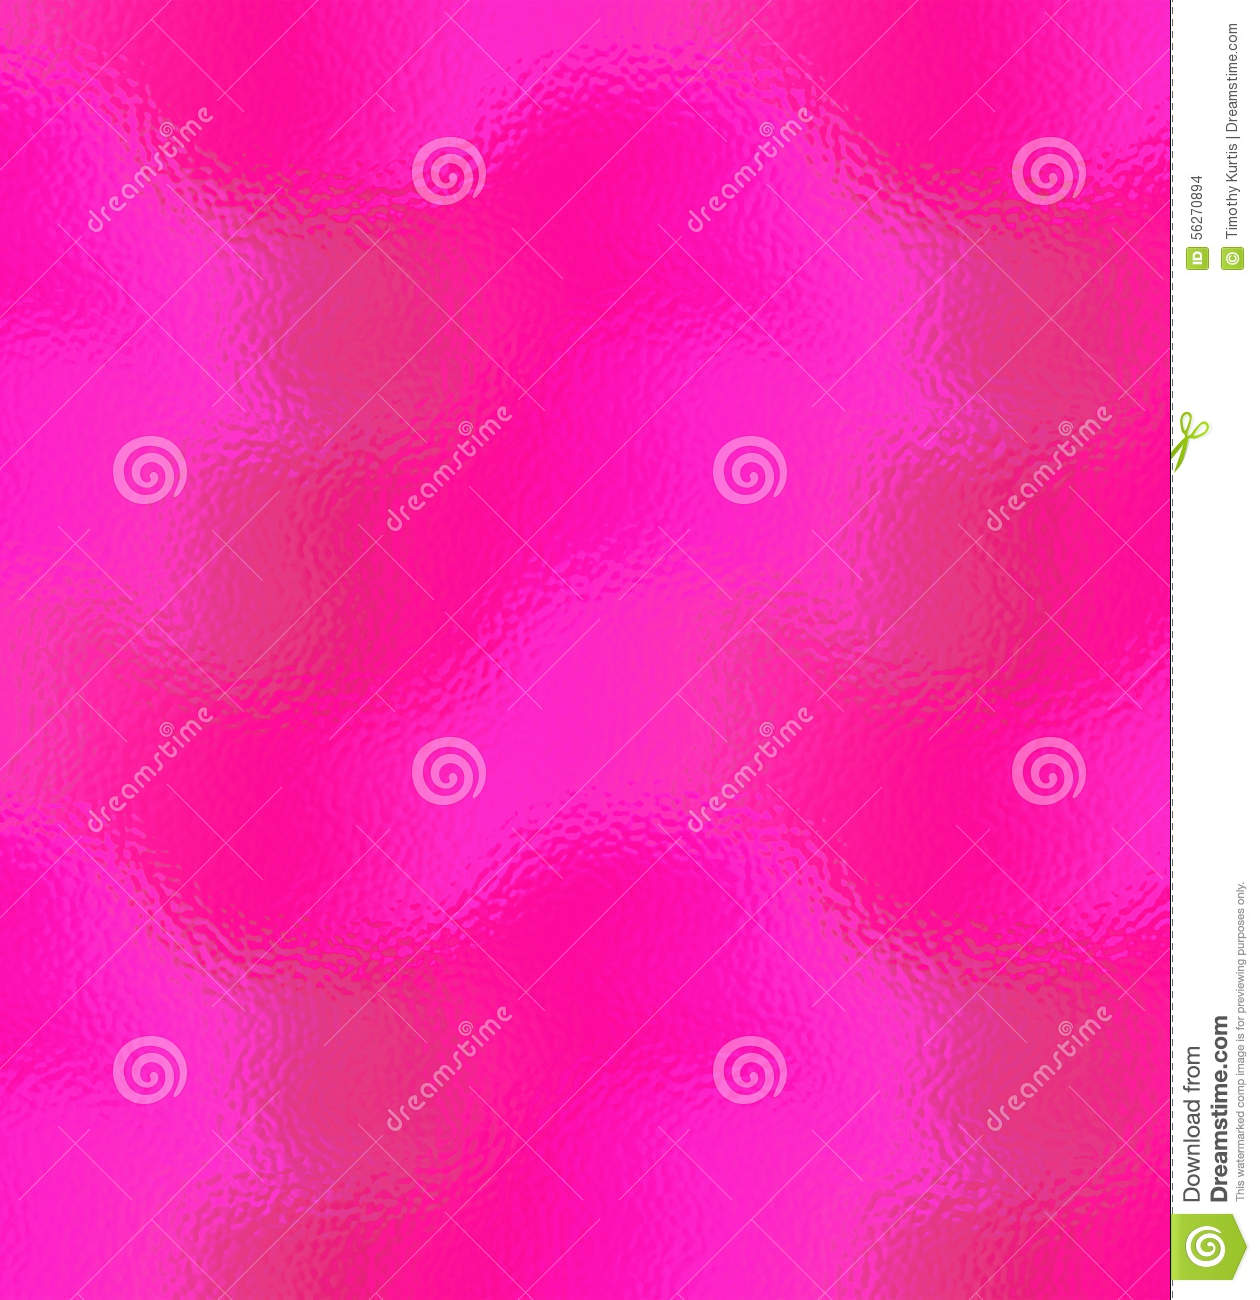 Transom Windows A Useful Design Element: Pink Frosted Glass Texture And Background For Use As A Web